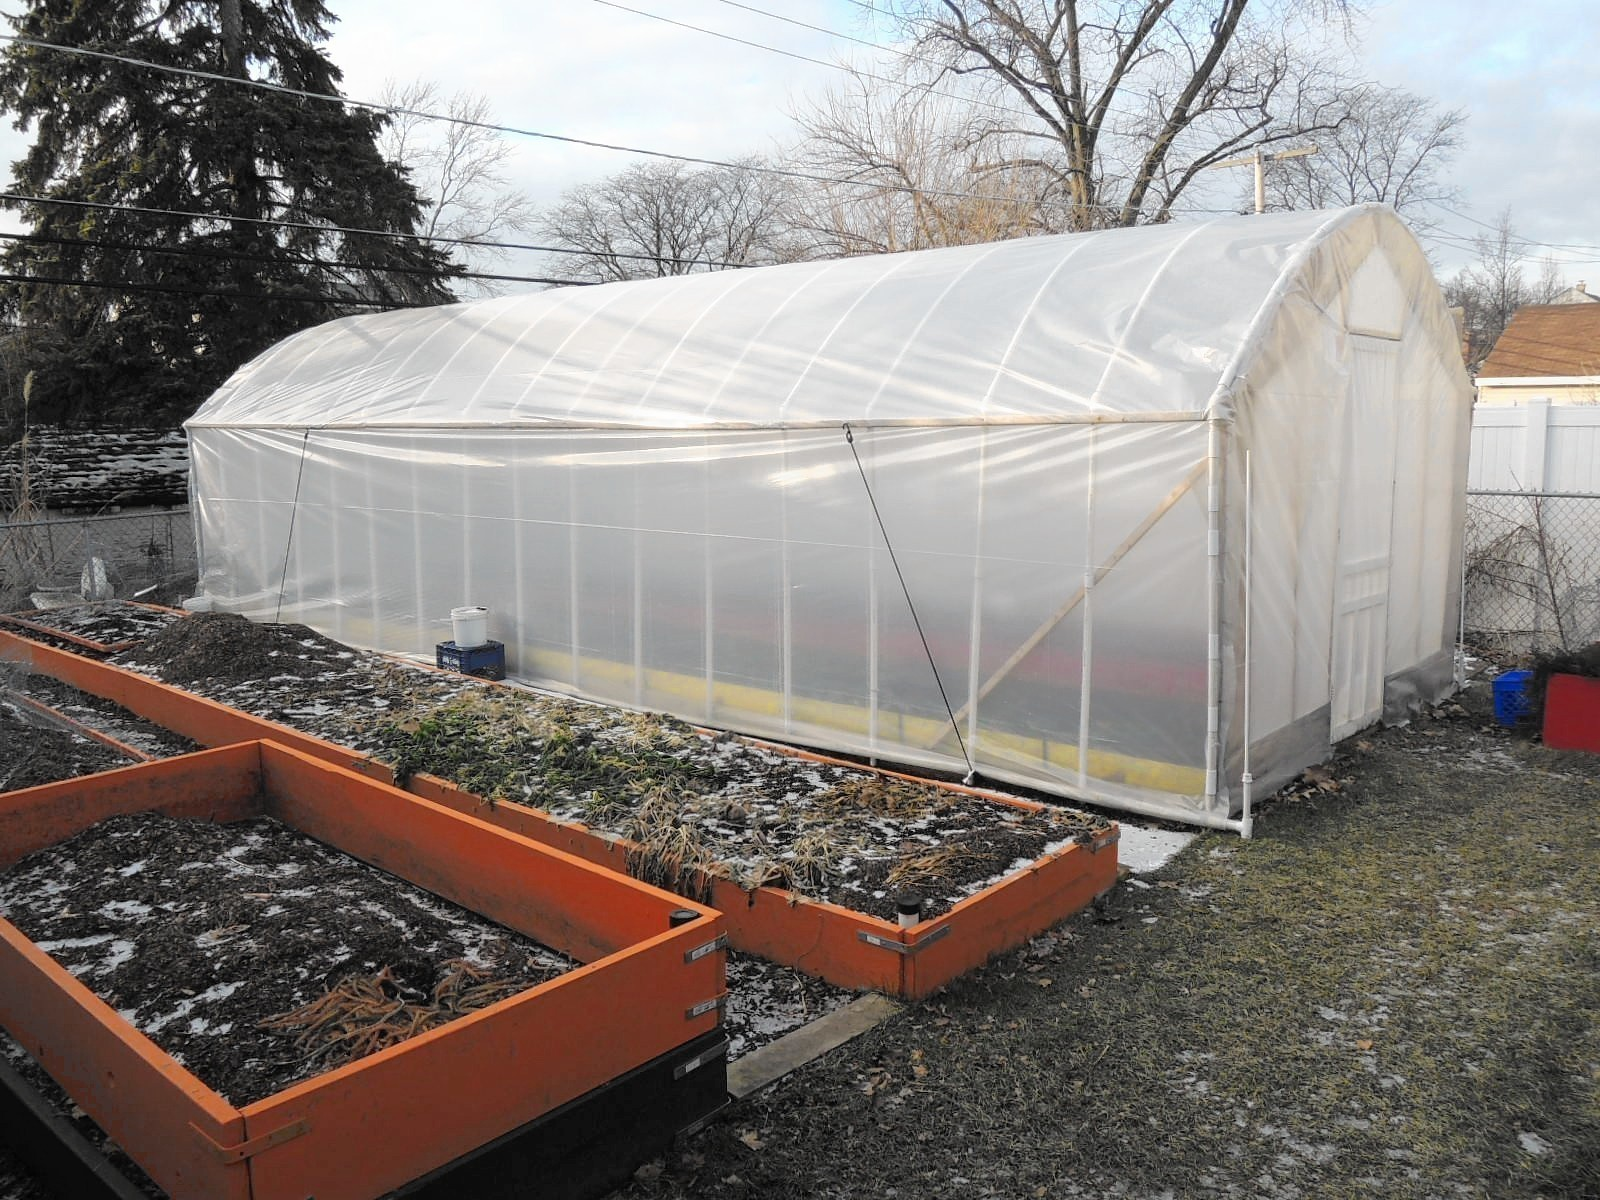 Elmhurst Hoop House Removed But Dispute Remains Chicago